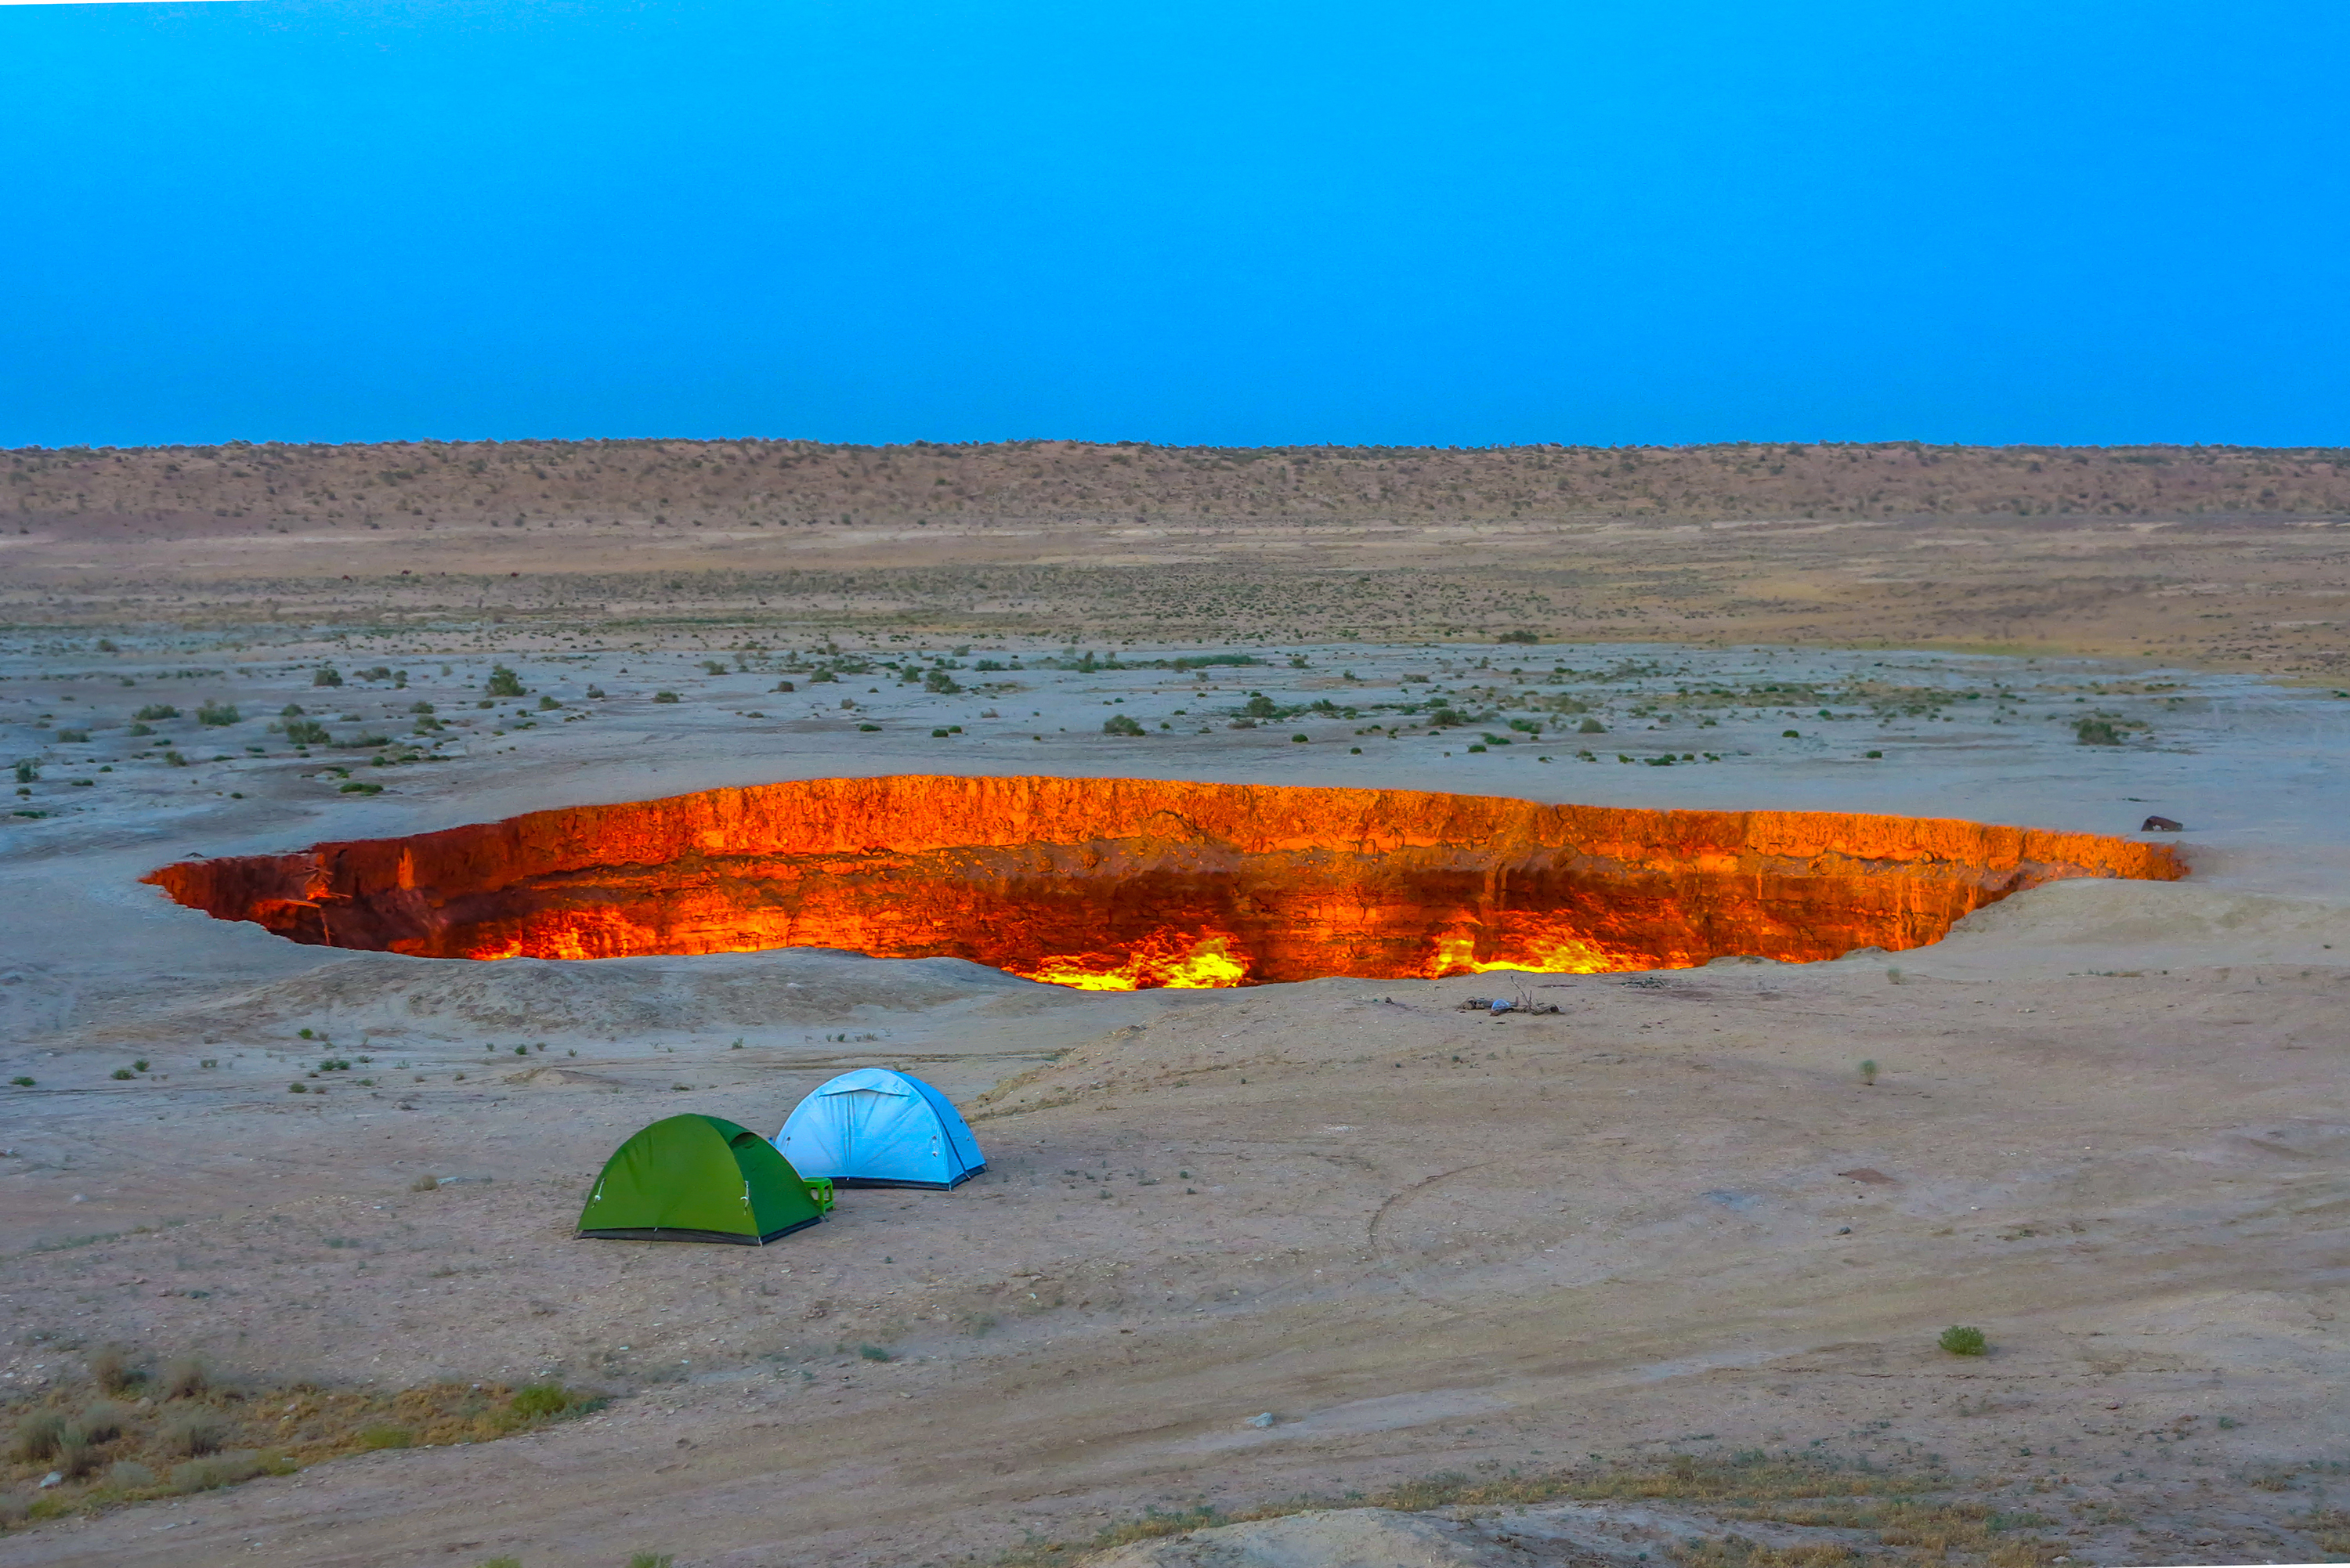 Camping at the Dawarza Crater or Doorway to Hell